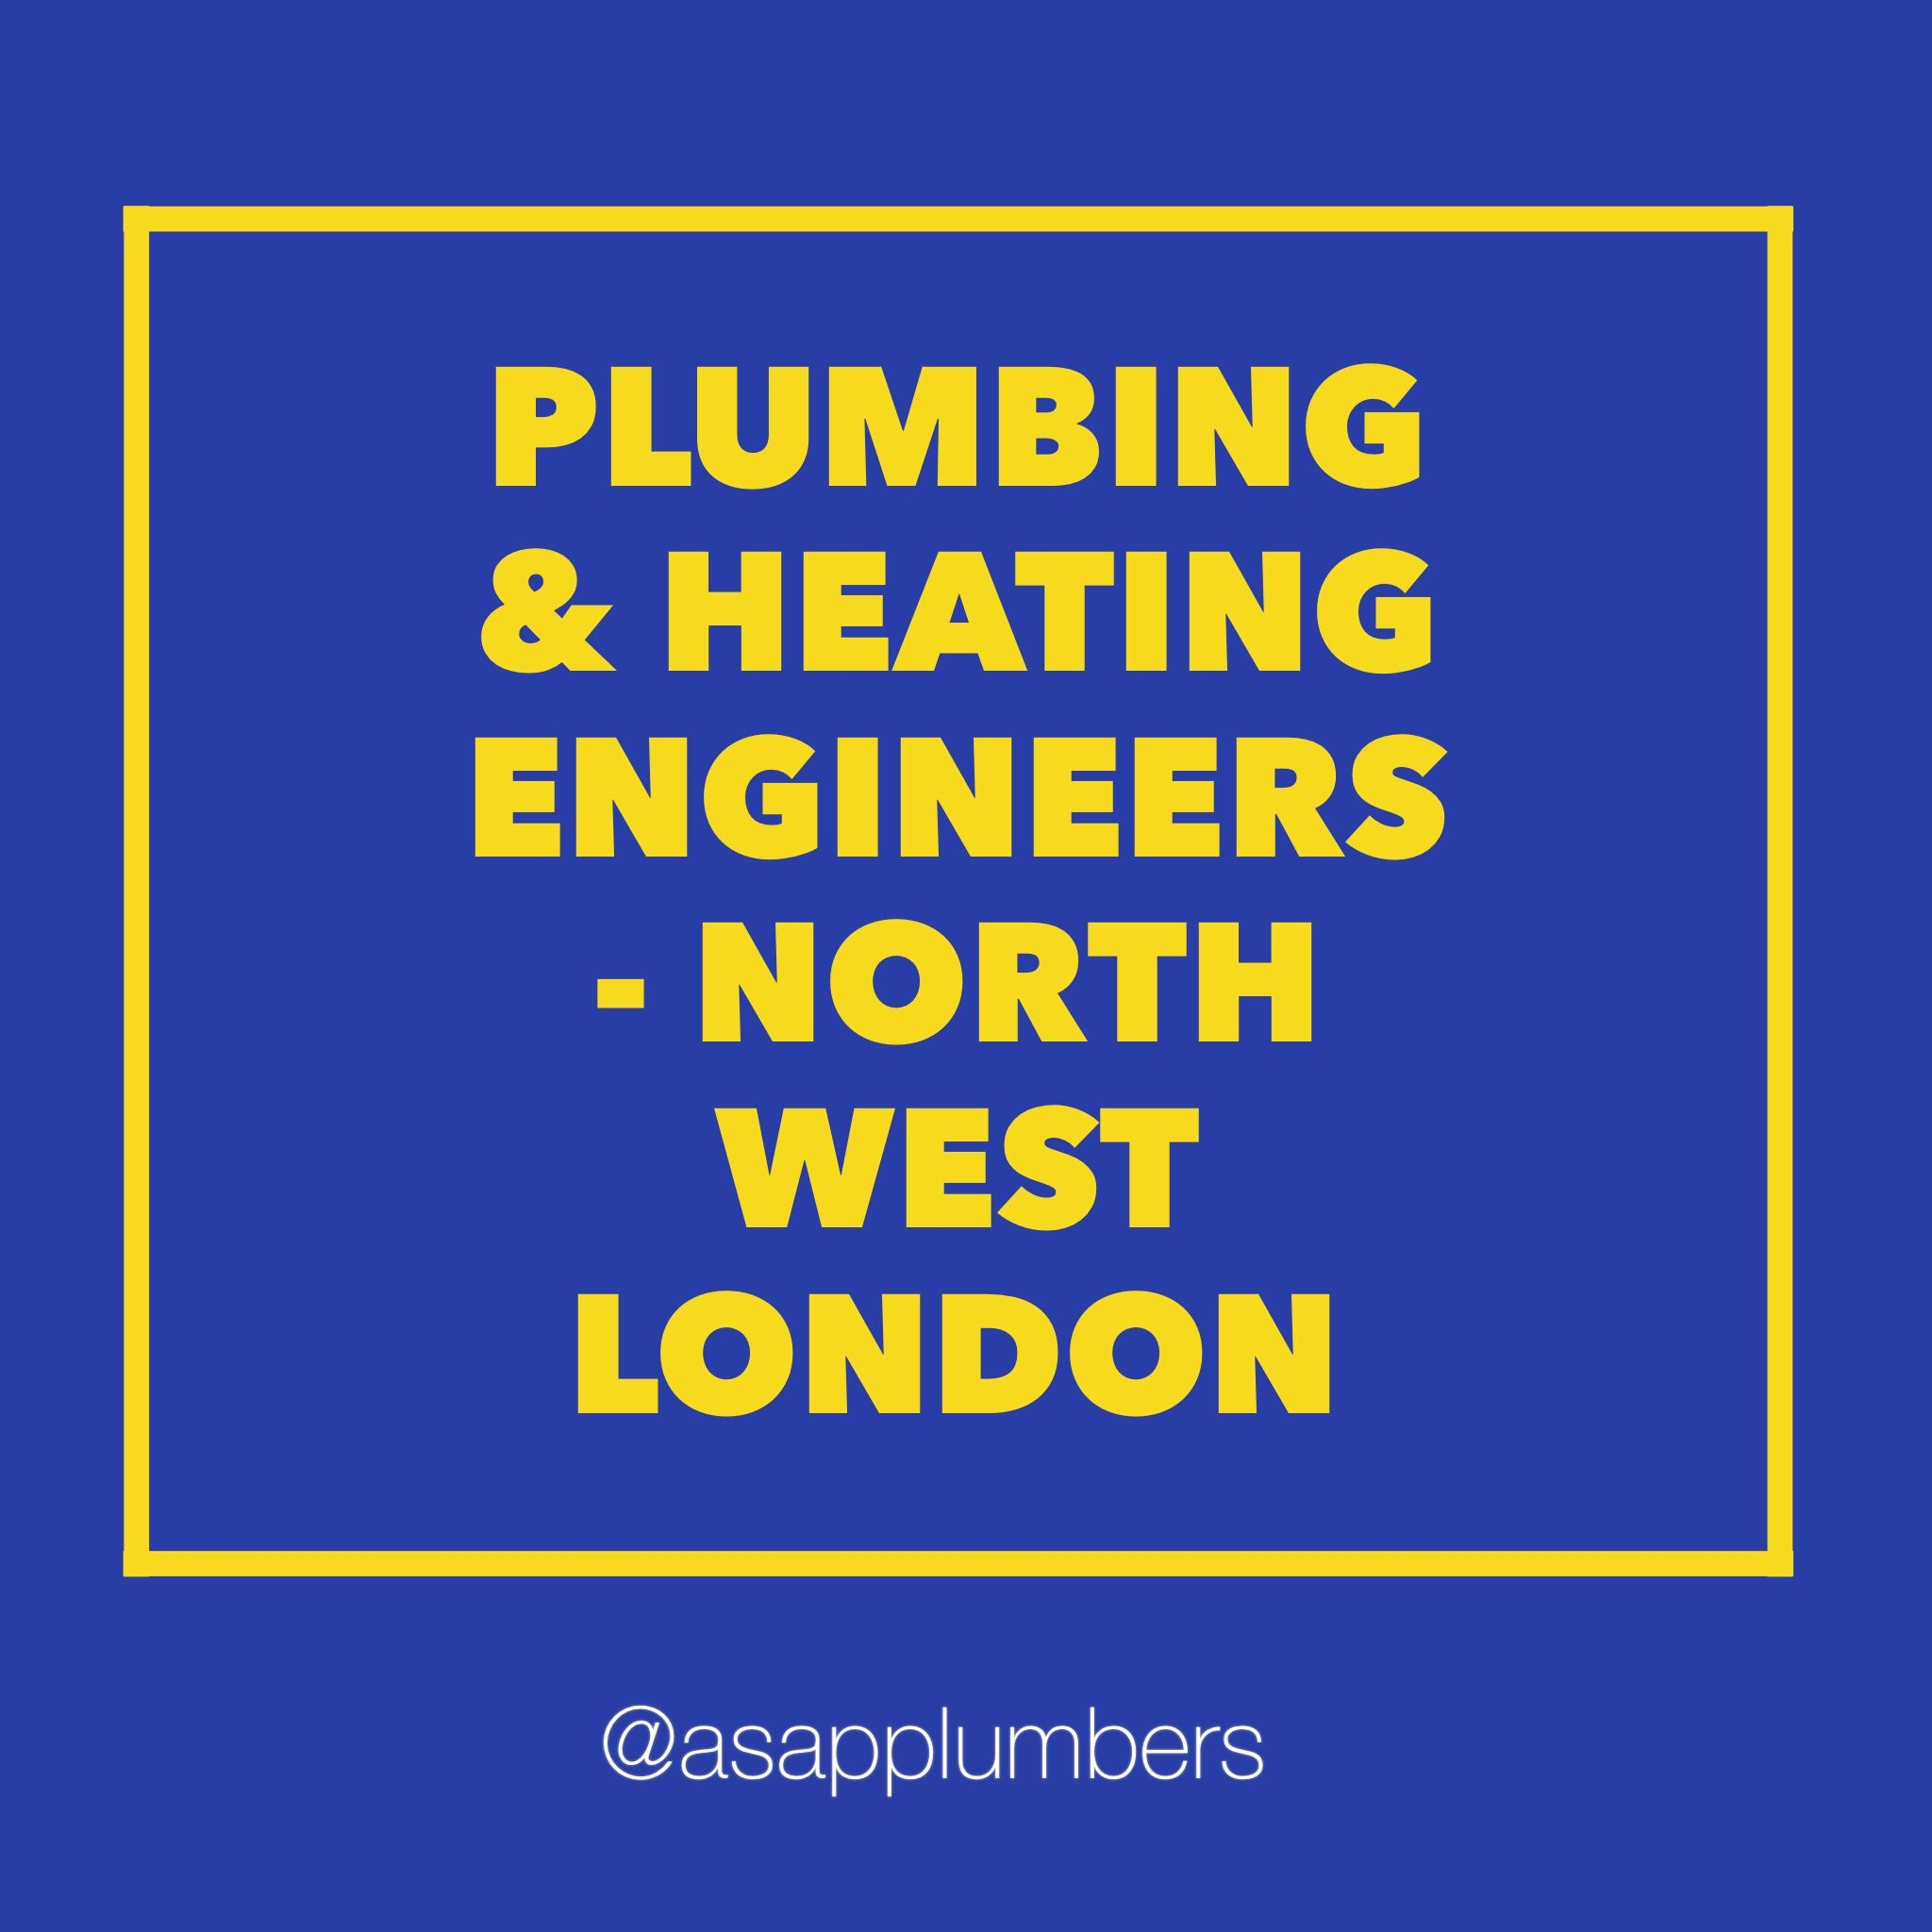 Find gas safe plumbers and heating engineers in north west